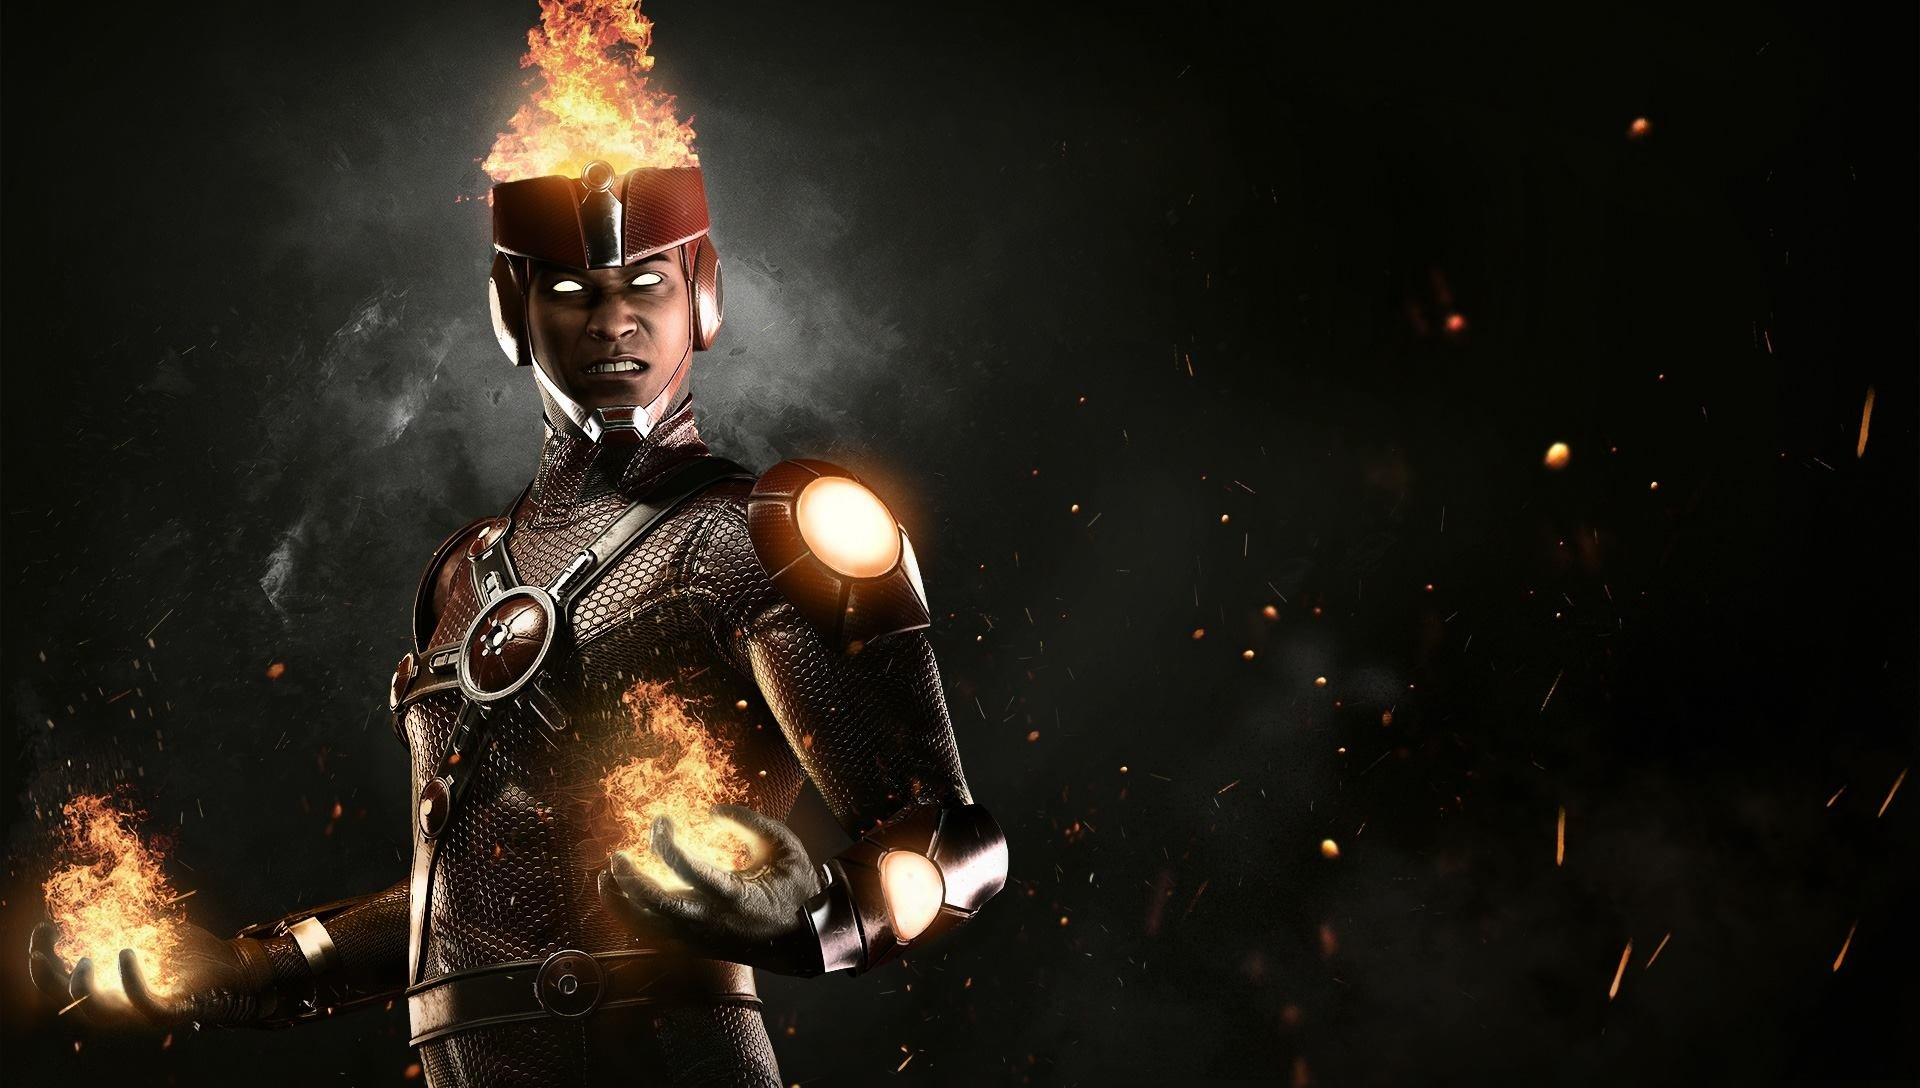 1920x1088 - Firestorm Wallpapers 7